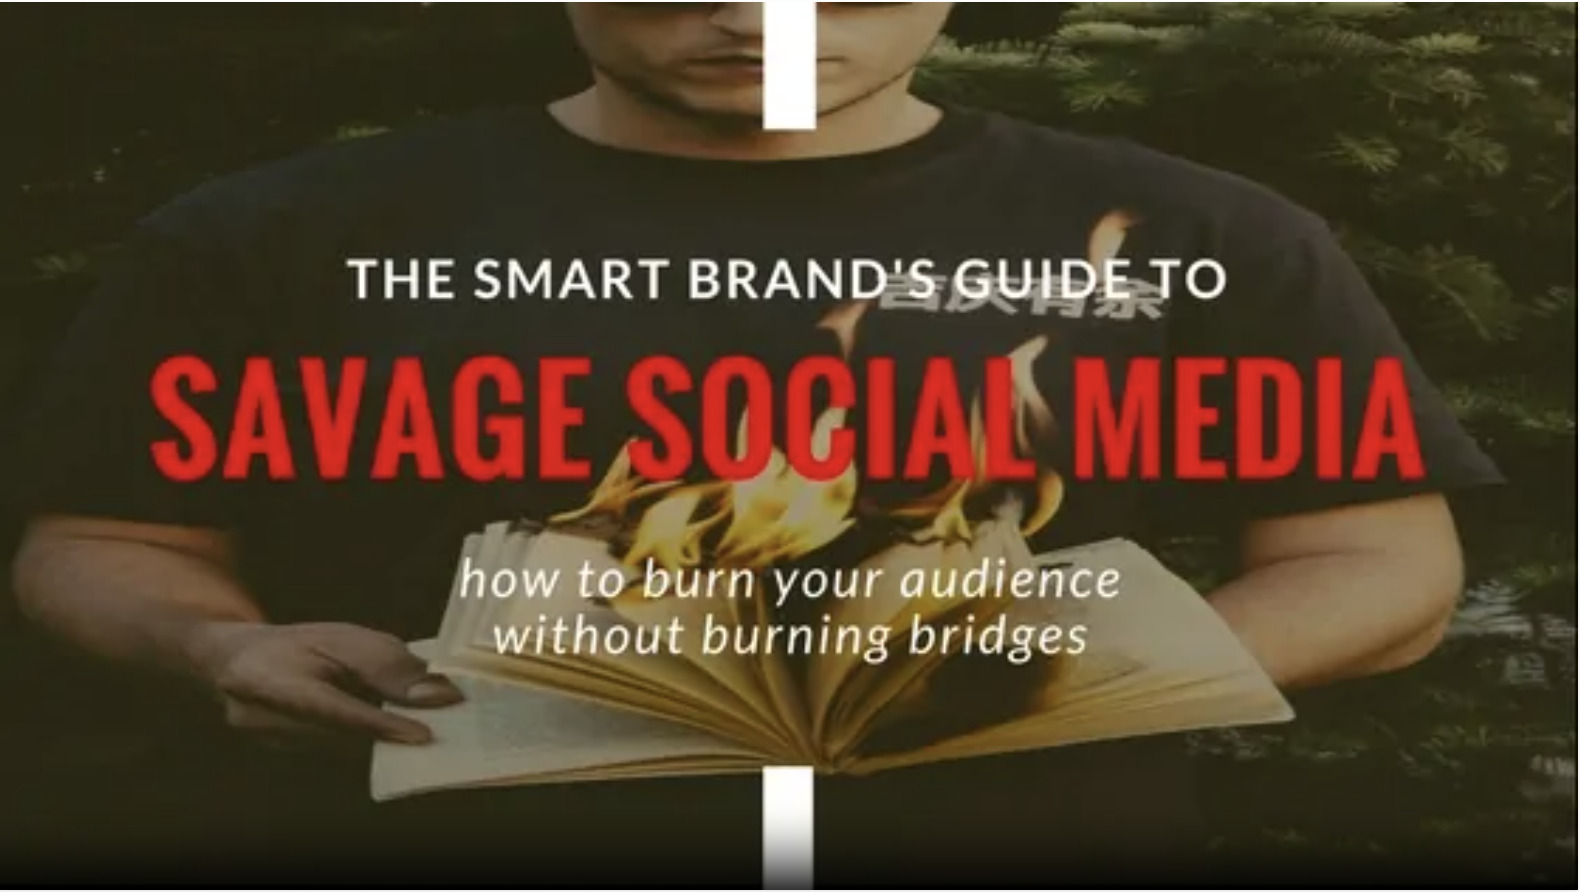 The Smart Brand's Guide to Savage Social Media blog post